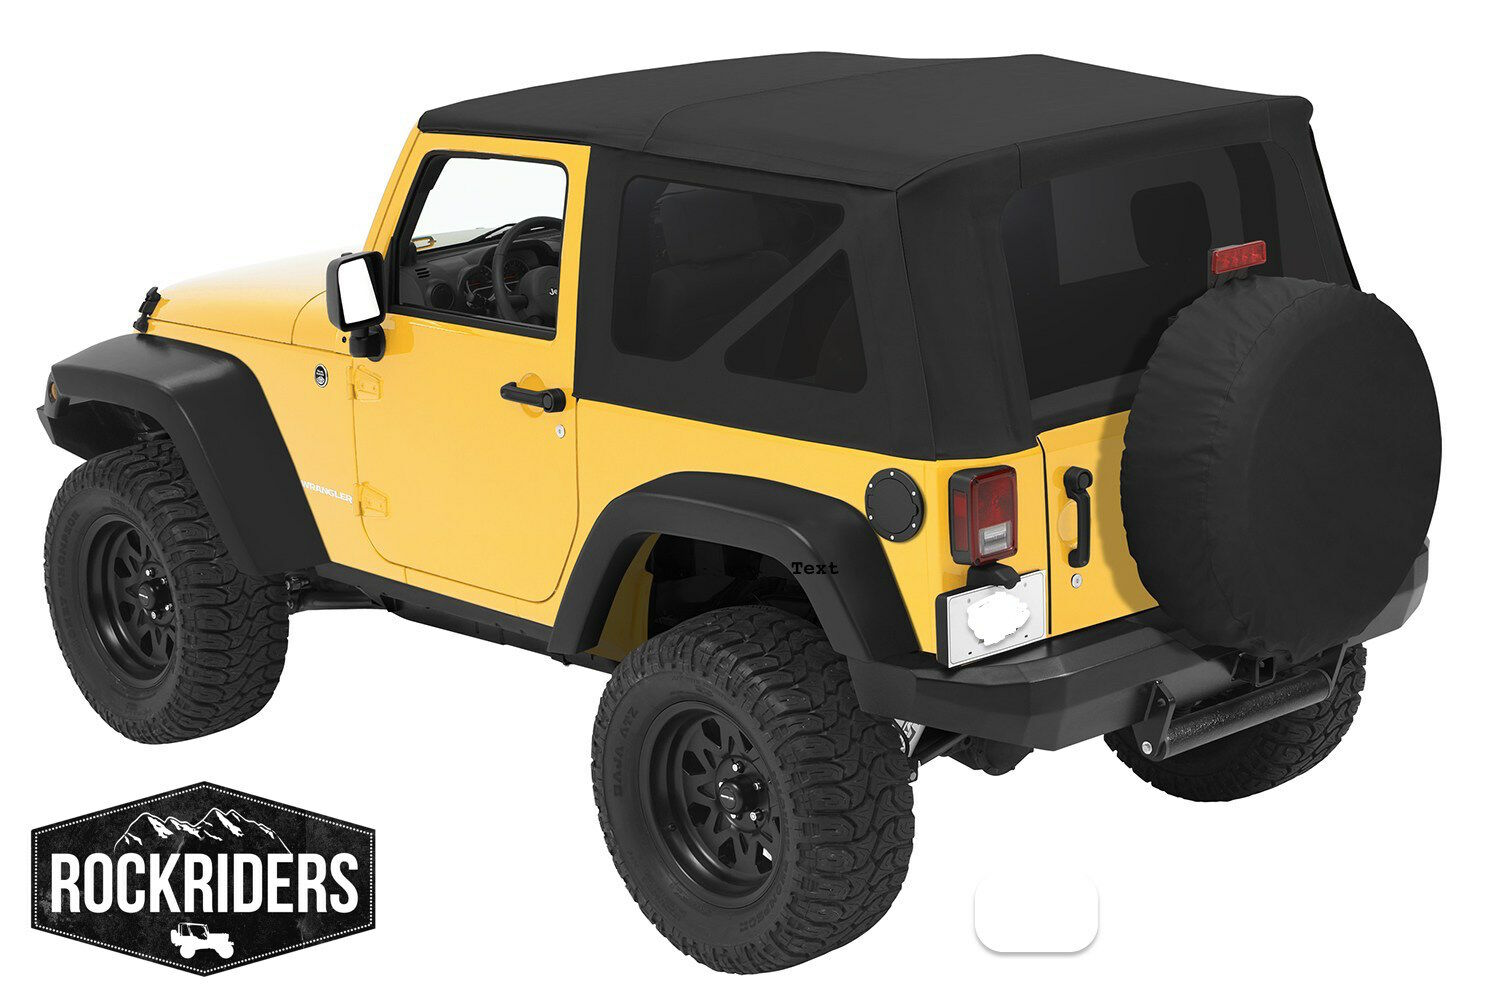 2010 2017 jeep wrangler 2 door replacement soft top with tinted rear windows picclick au. Black Bedroom Furniture Sets. Home Design Ideas